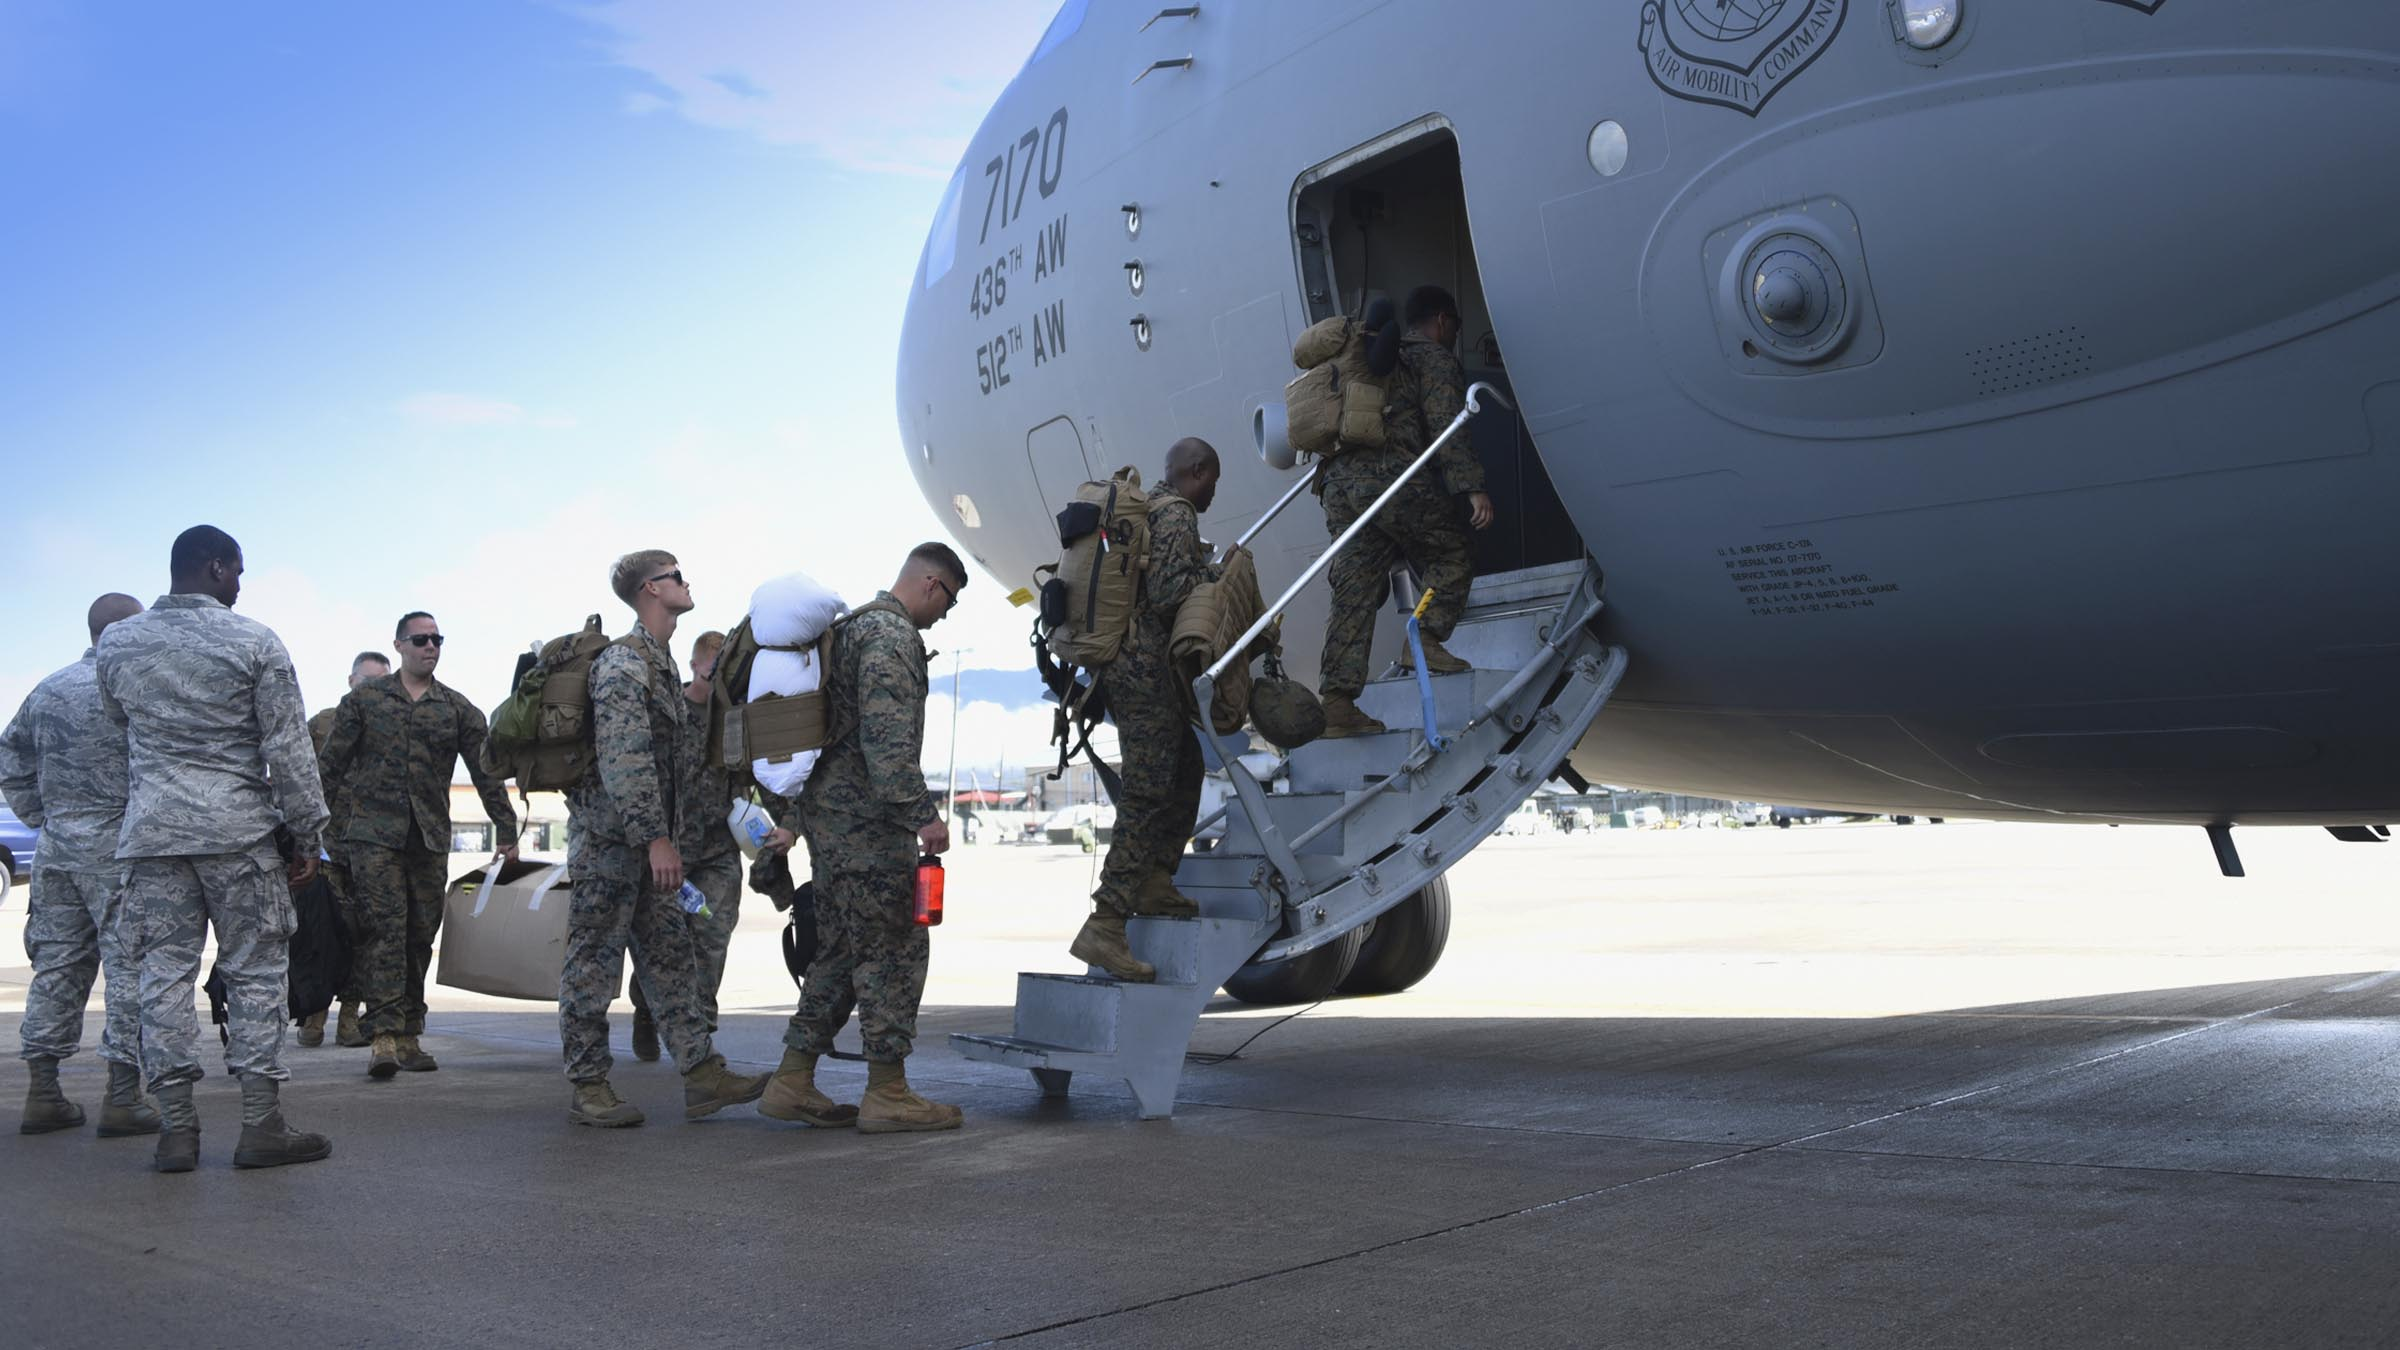 Service members boarding large aircraft